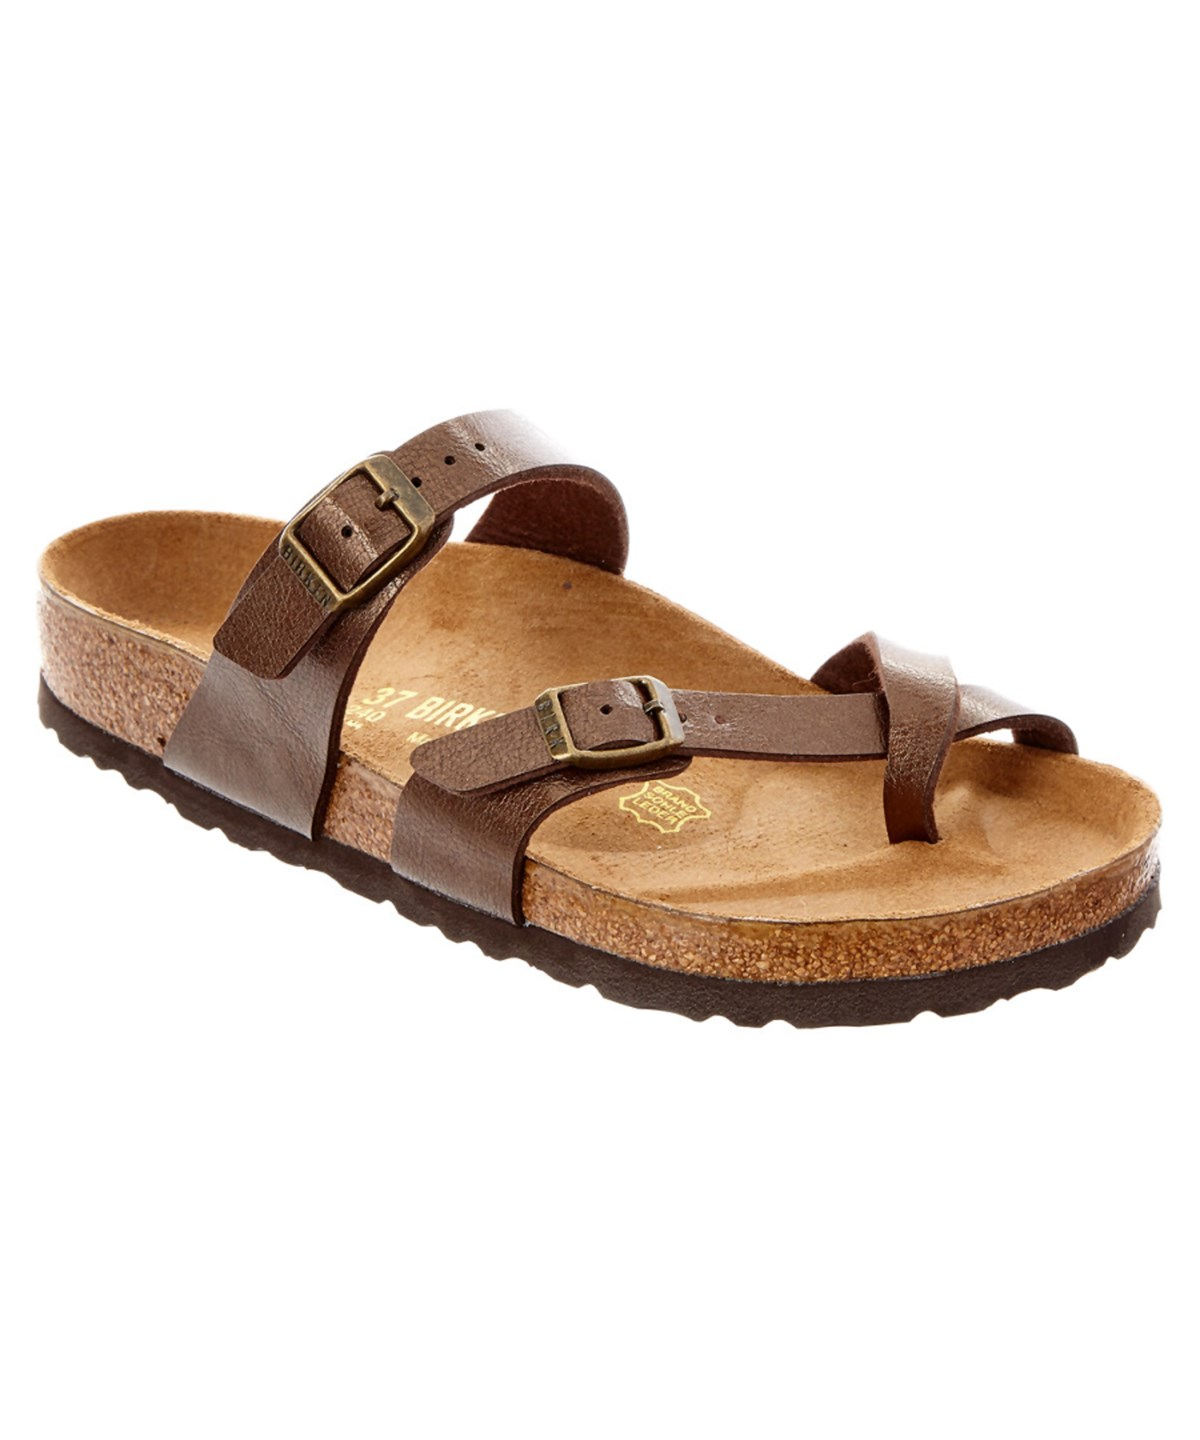 WOMEN'S MAYARI BUCKLED SLIDE SANDALS